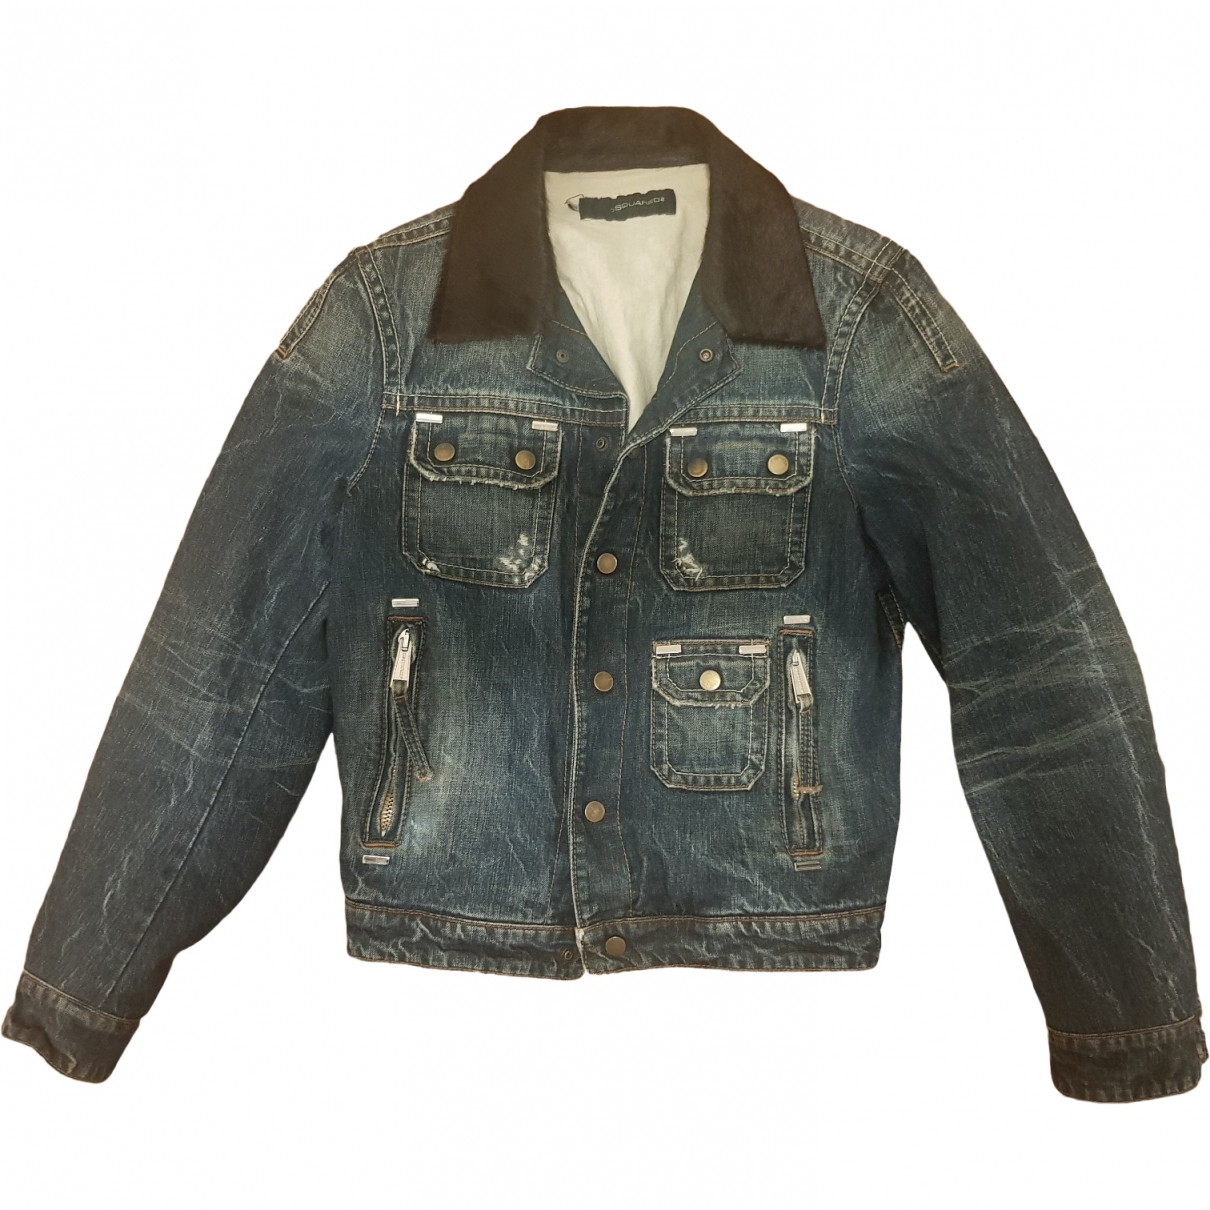 Dsquared2 \N Blue Denim - Jeans jacket  for Men S International